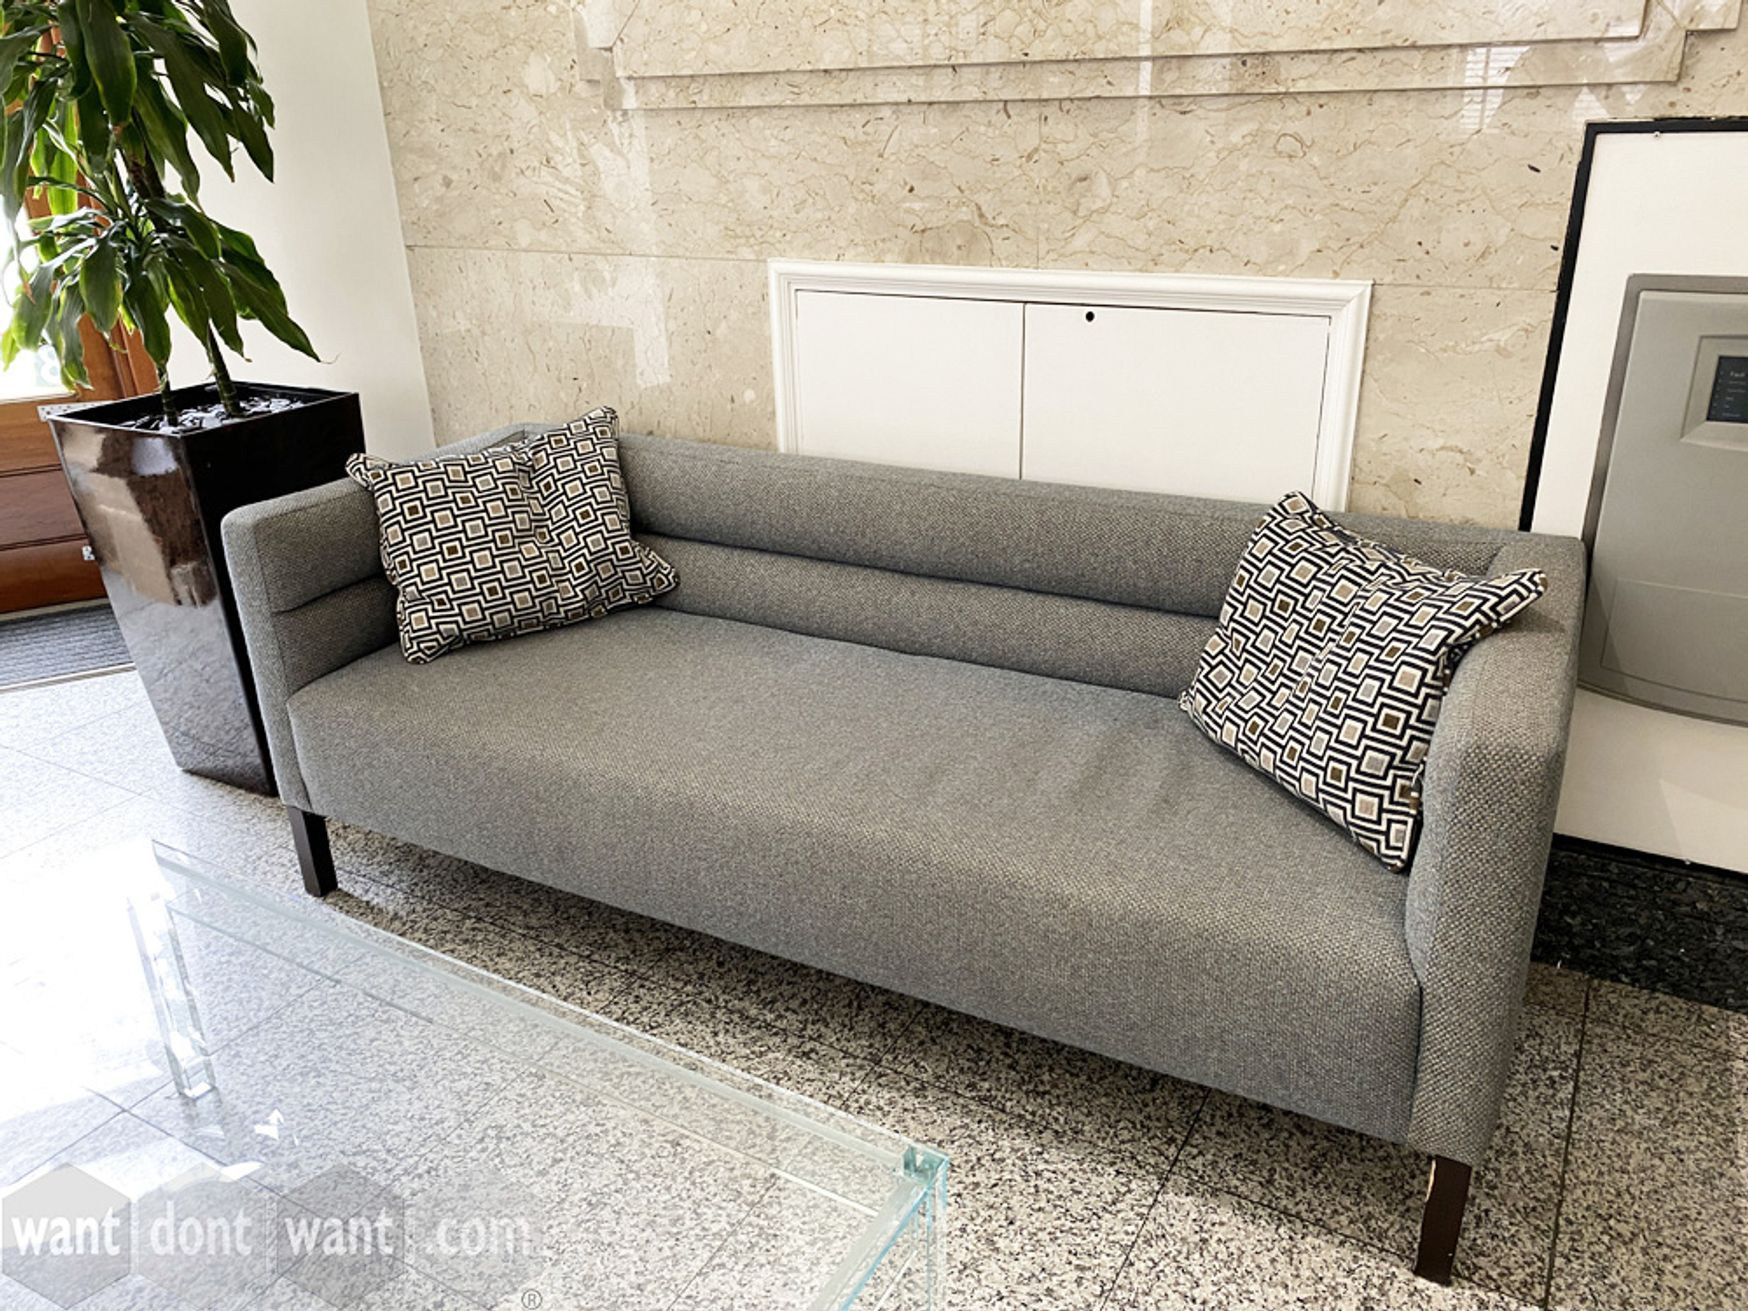 Used 3-seat sofa upholstered in multi-fleck fabric - 1900mm wide.